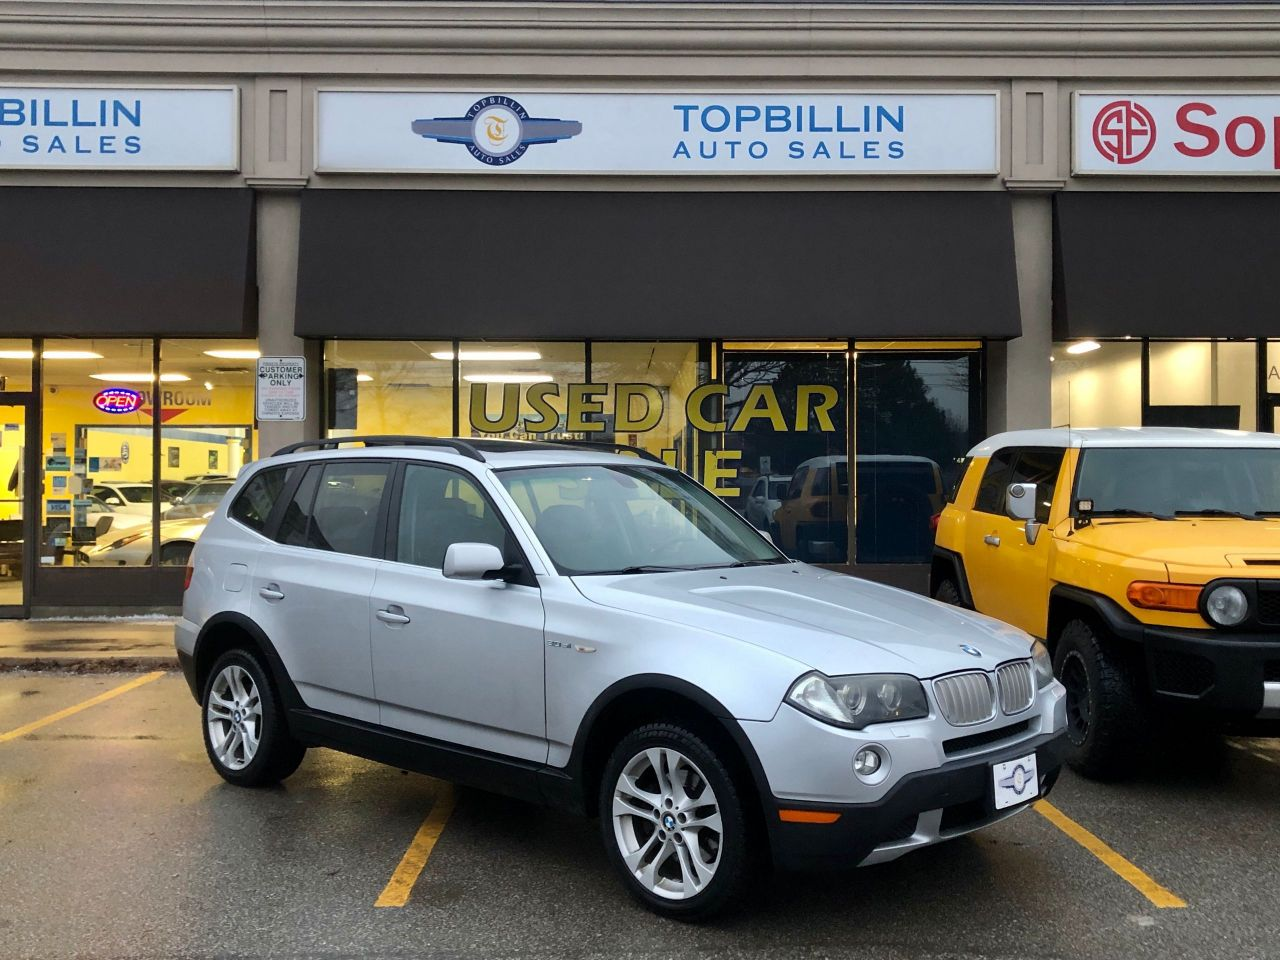 2008 BMW X3 3.0si Pano Roof, Leather, 2 years Warranty